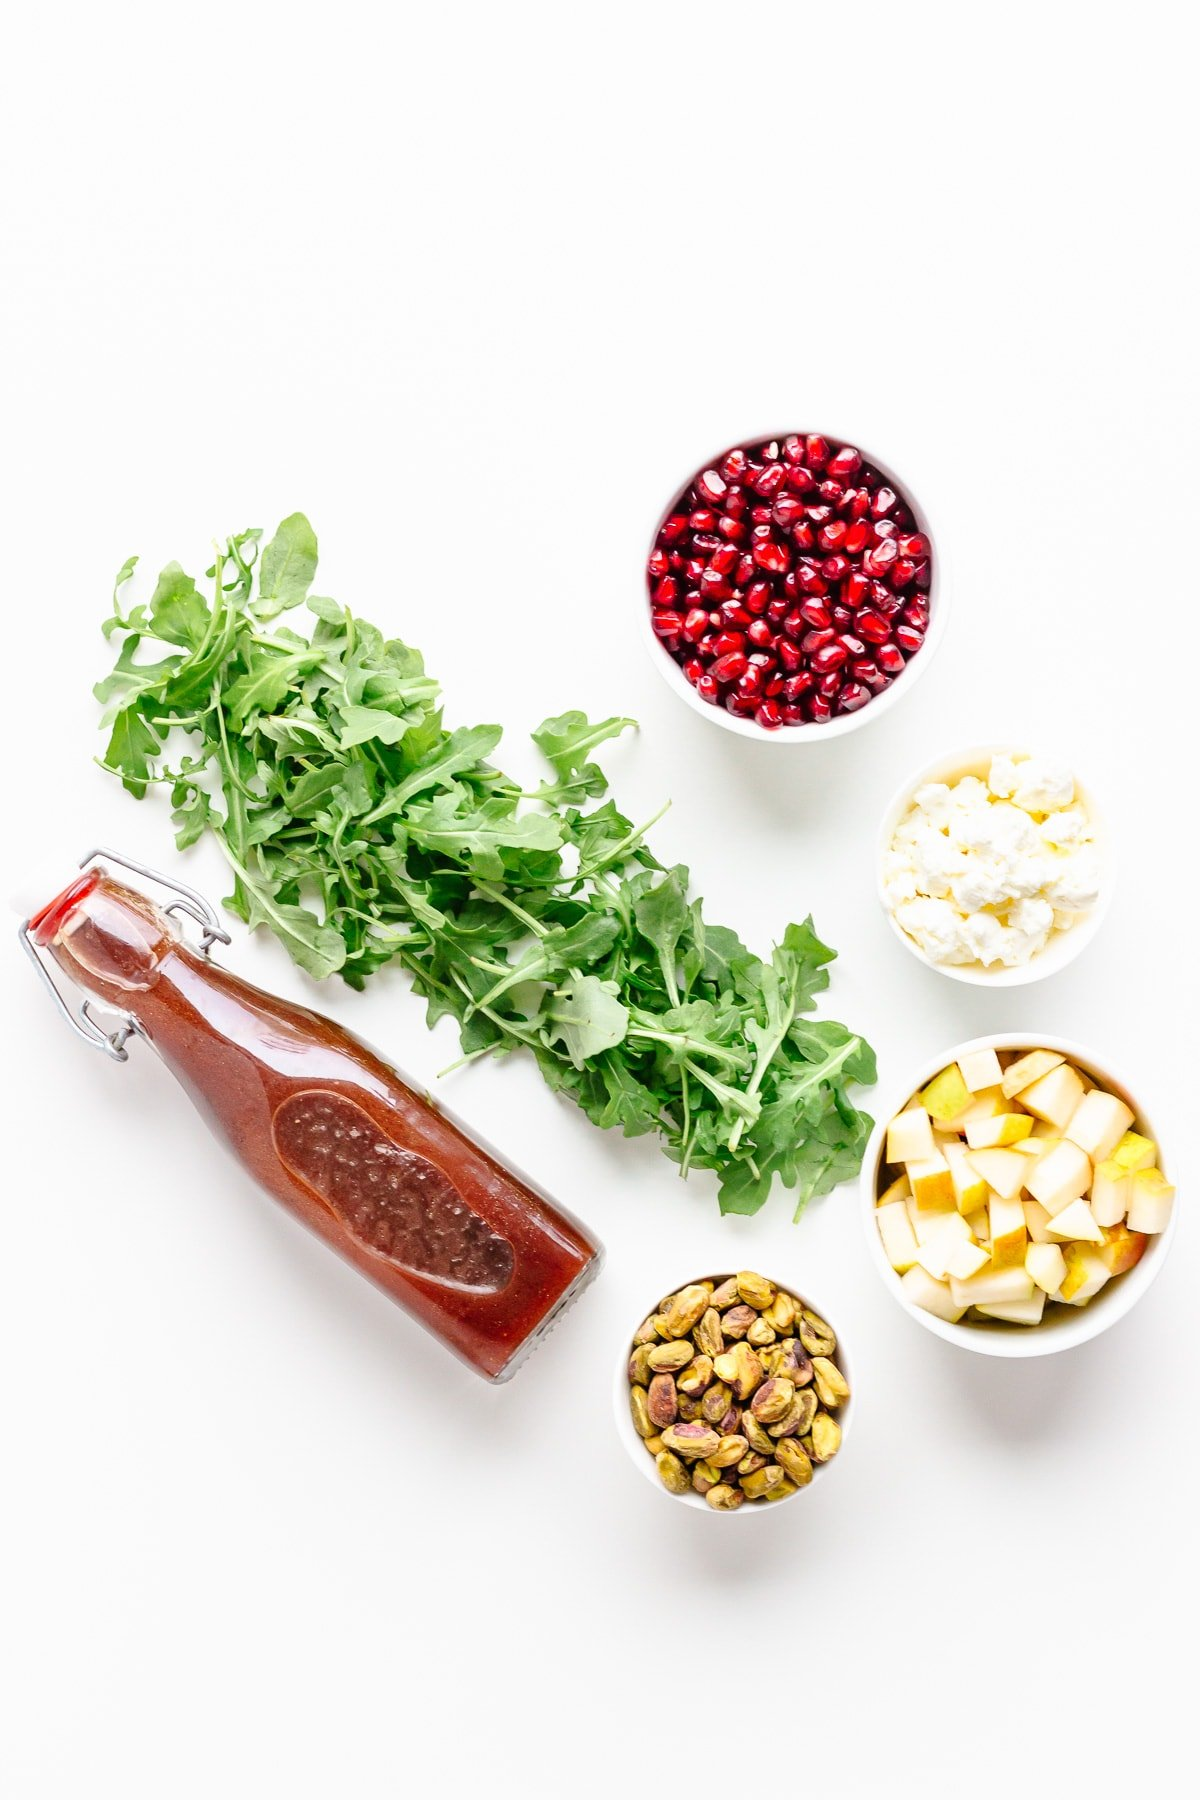 Overhead photo of ingredients needed for winter holiday salad recipe: arugula, pomegranate arils, goat cheese, pear, pistachios and pomegranate vinaigrette.